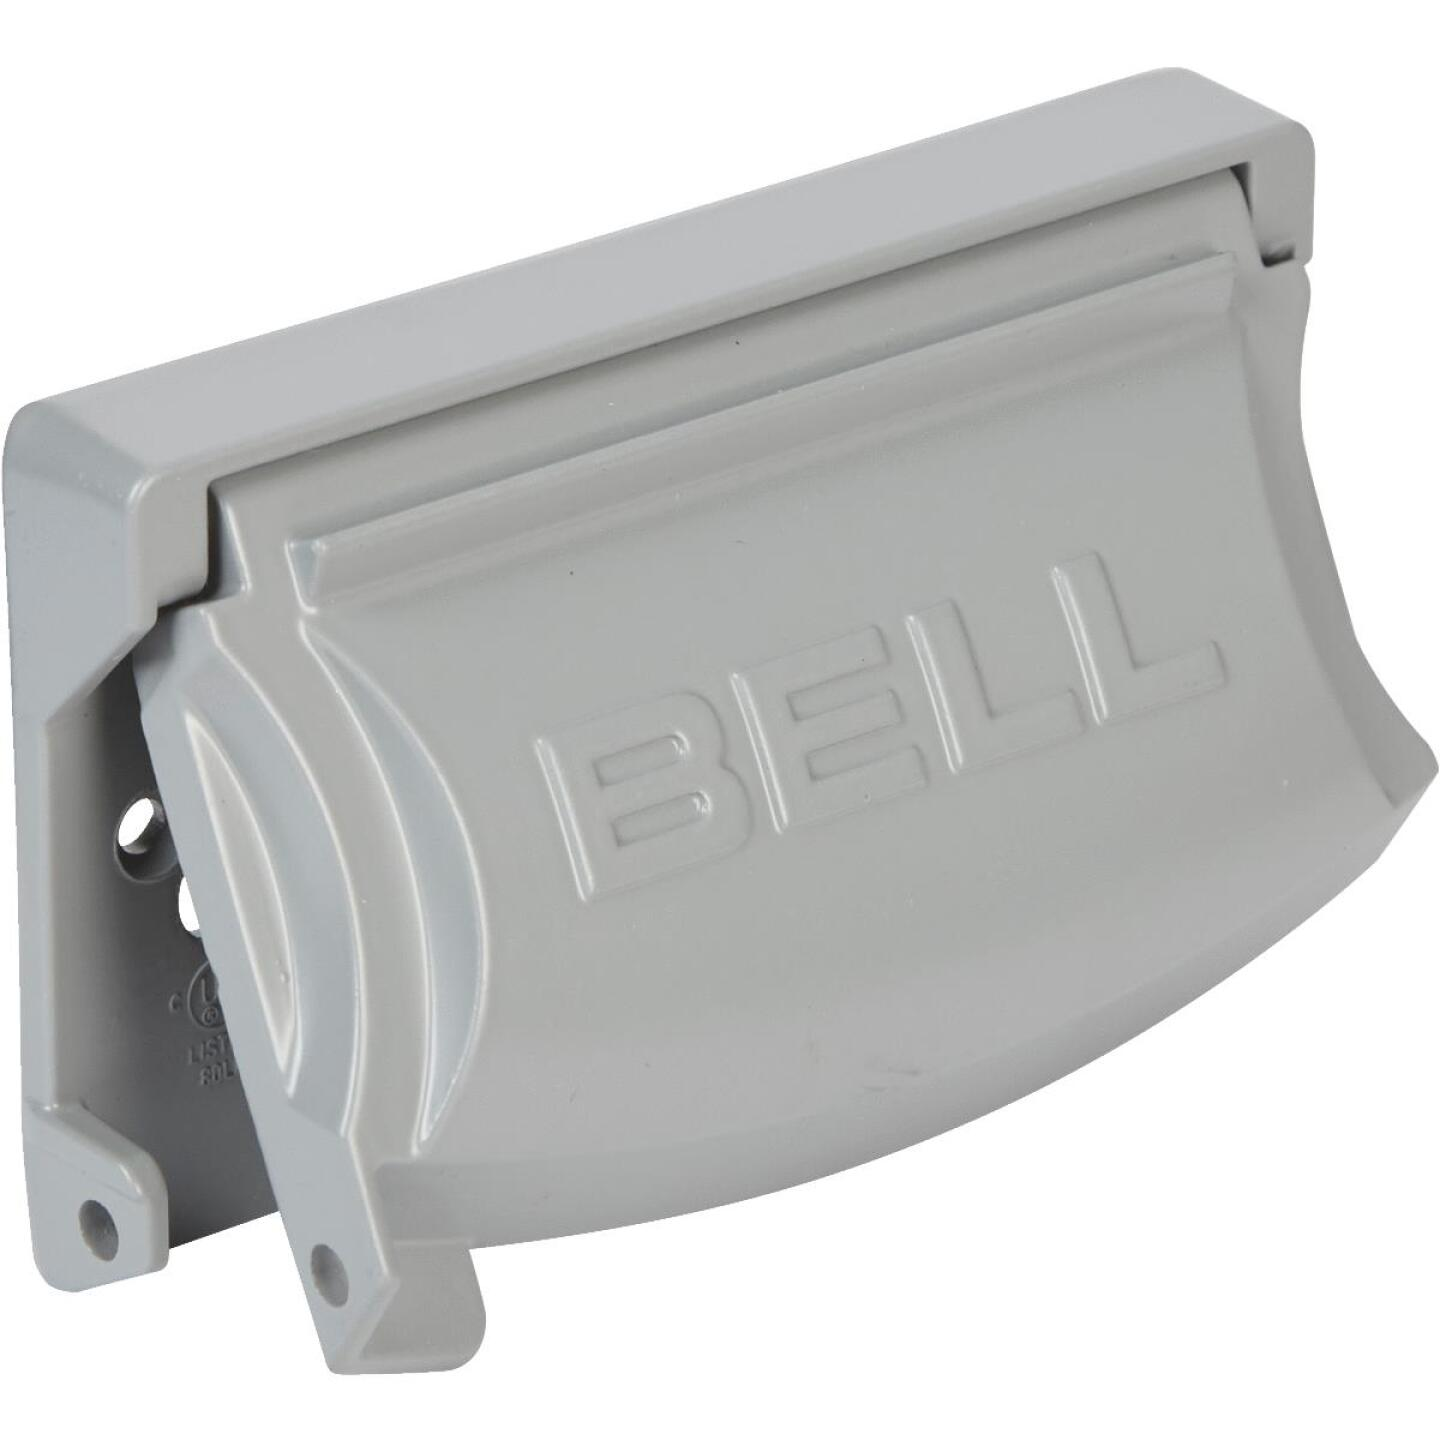 Bell Single Gang Multi-Configuration Die-Cast Metal Gray Outdoor Outlet Cover Image 1